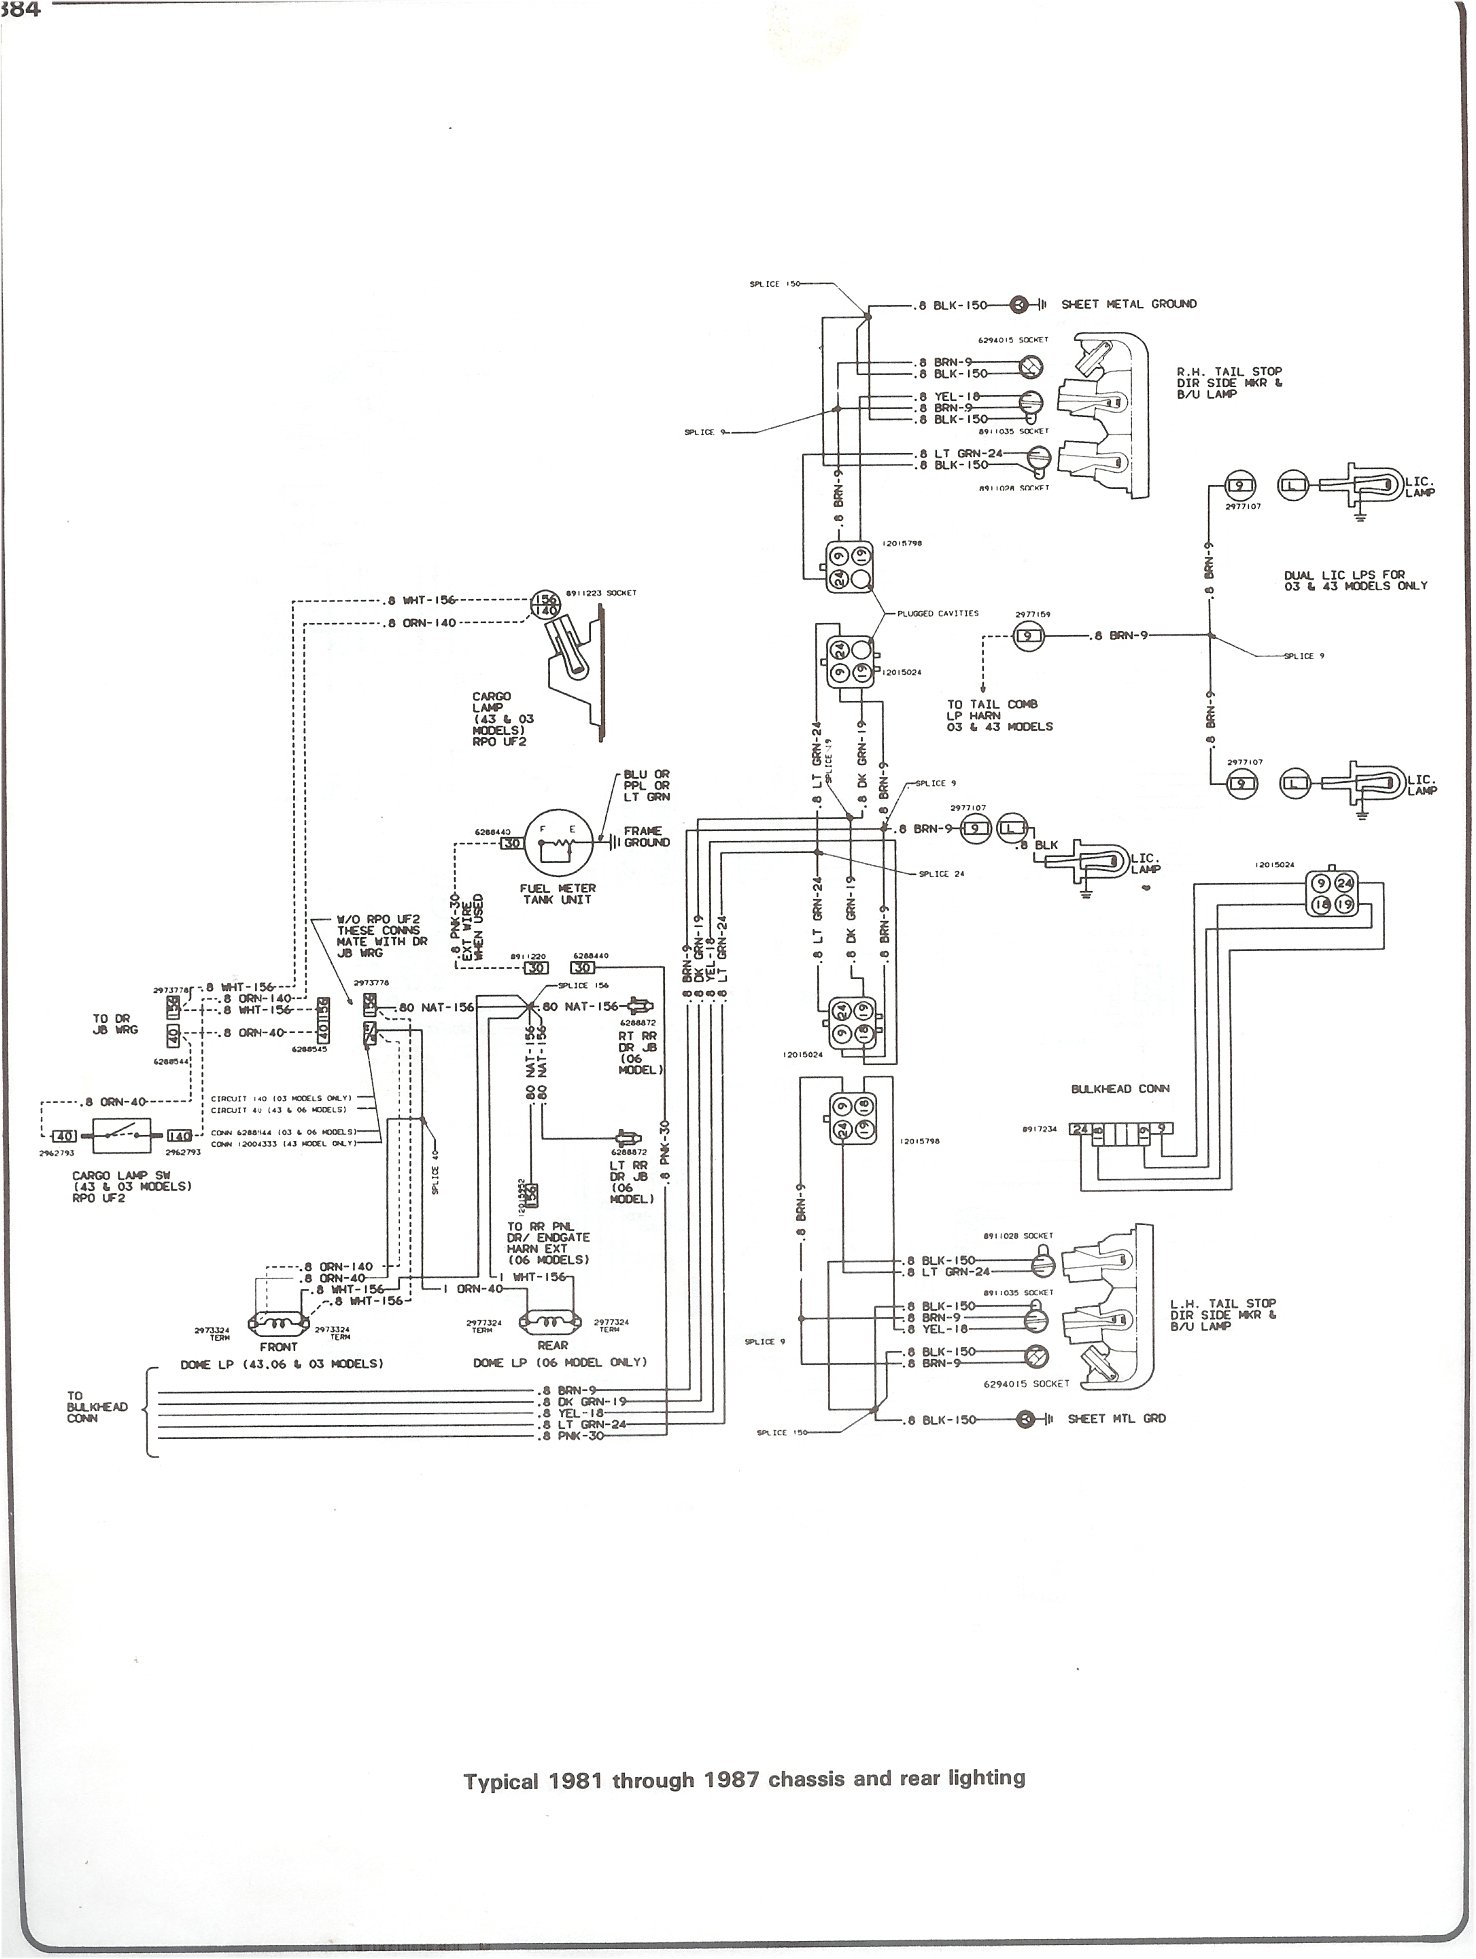 81 Chevy Truck Fuse Diagram | Wiring Liry on air conditioner wiring connection, air conditioner schematics, air conditioner test equipment, air switch wiring diagram, air conditioner wiring requirements, hvac systems diagrams, air conditioner contactor diagram, air conditioner not cooling, hdmi tv cable connections diagrams, air conditioner air flow diagram, air conditioner compressor, air conditioner wires, air conditioner relay diagram, basic hvac ladder diagrams, ceiling fans diagrams, air conditioner electrical, air handler wiring diagram, air compressor wiring diagram, air conditioning, rooftop hvac unit diagrams,